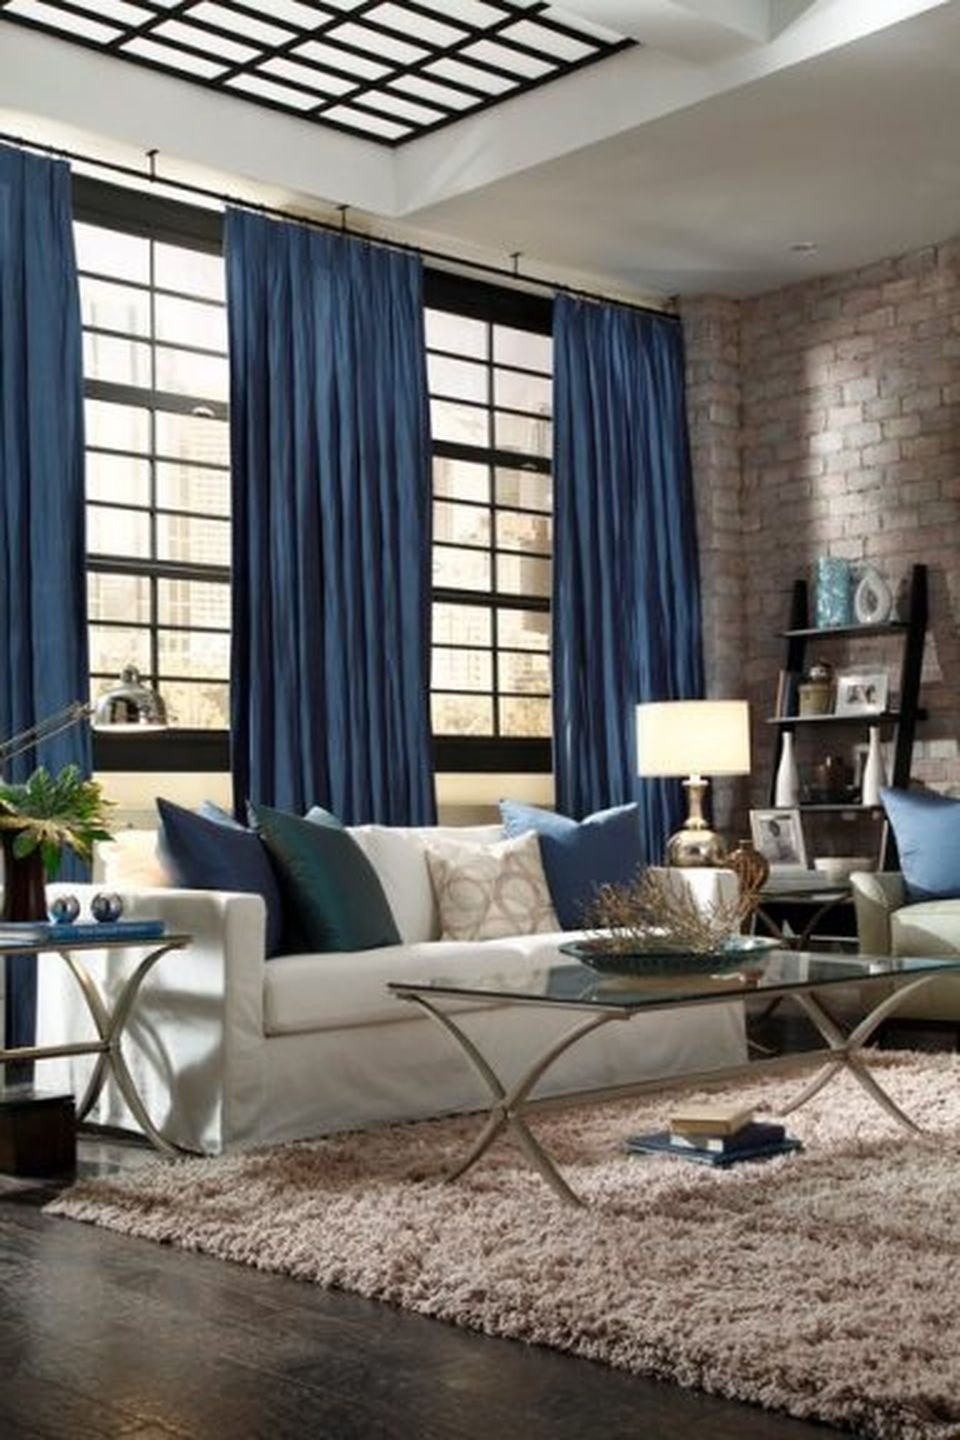 Awesome Tall Curtains Ideas for Living Room 17 - Hoommy.com on Living Room Drapes Ideas  id=50404